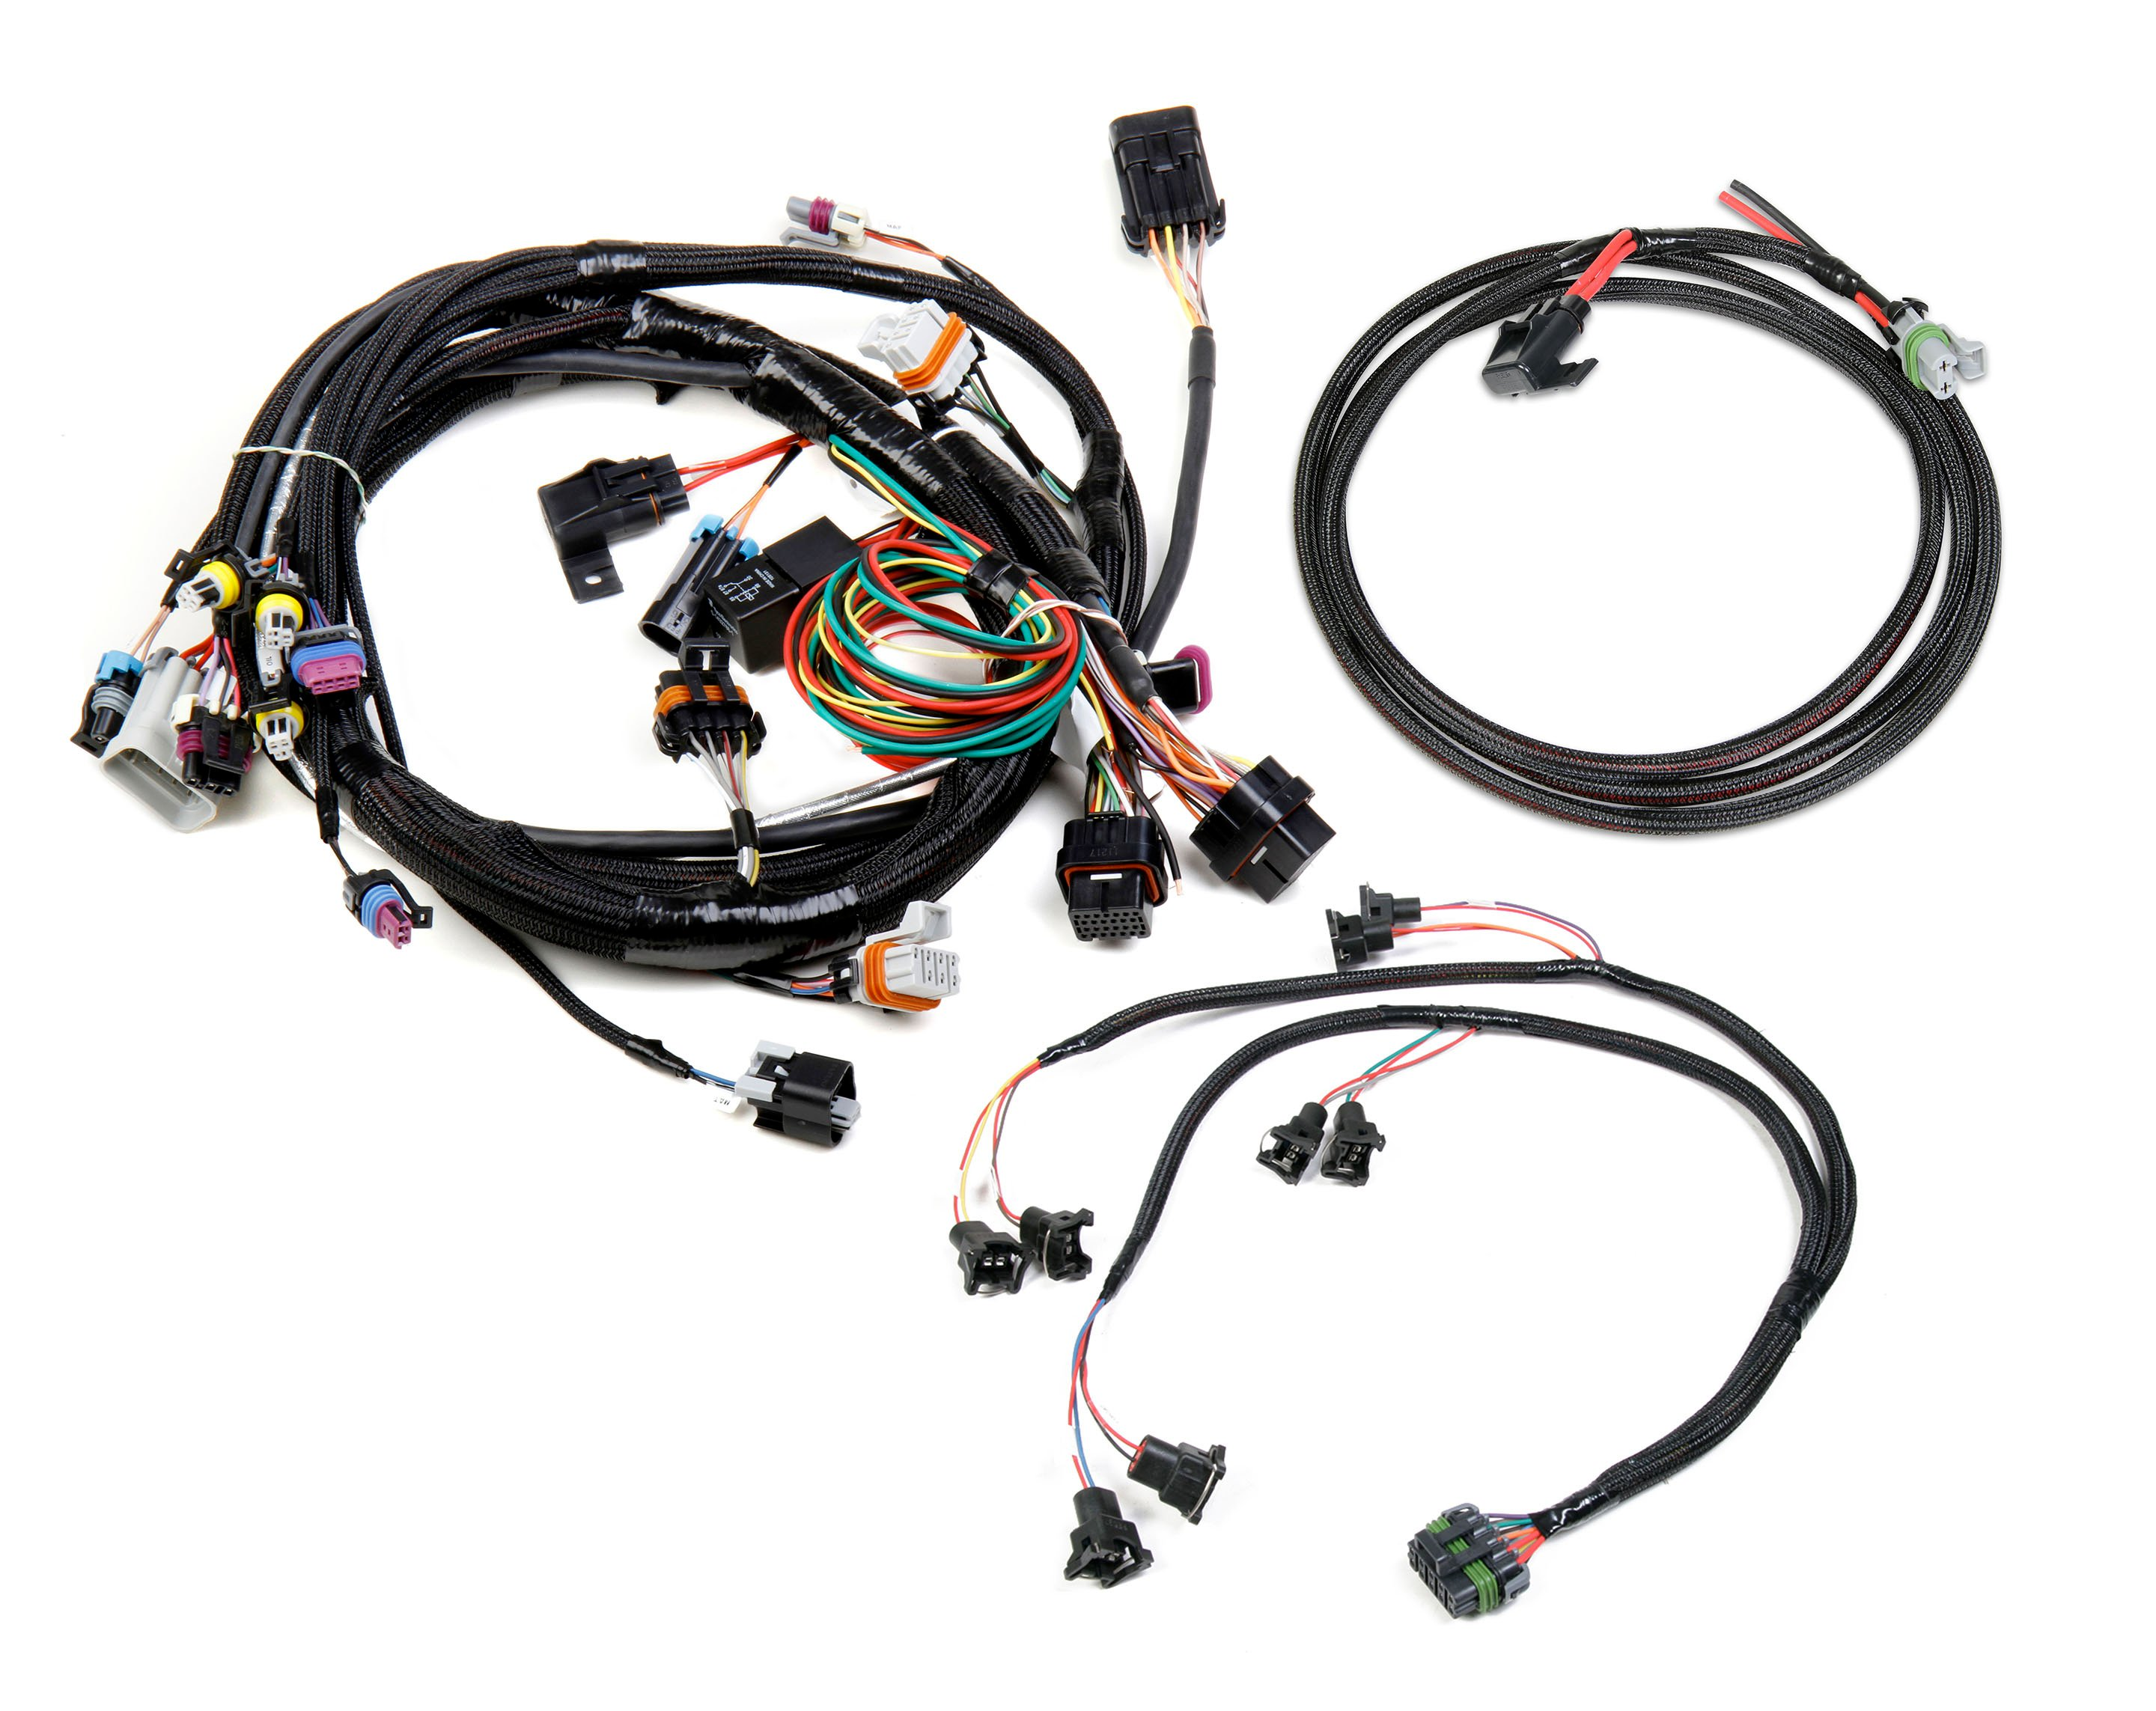 558 500 holley efi 558 500 gm ls 24x efi harness kit holley annihilator wiring diagram at reclaimingppi.co